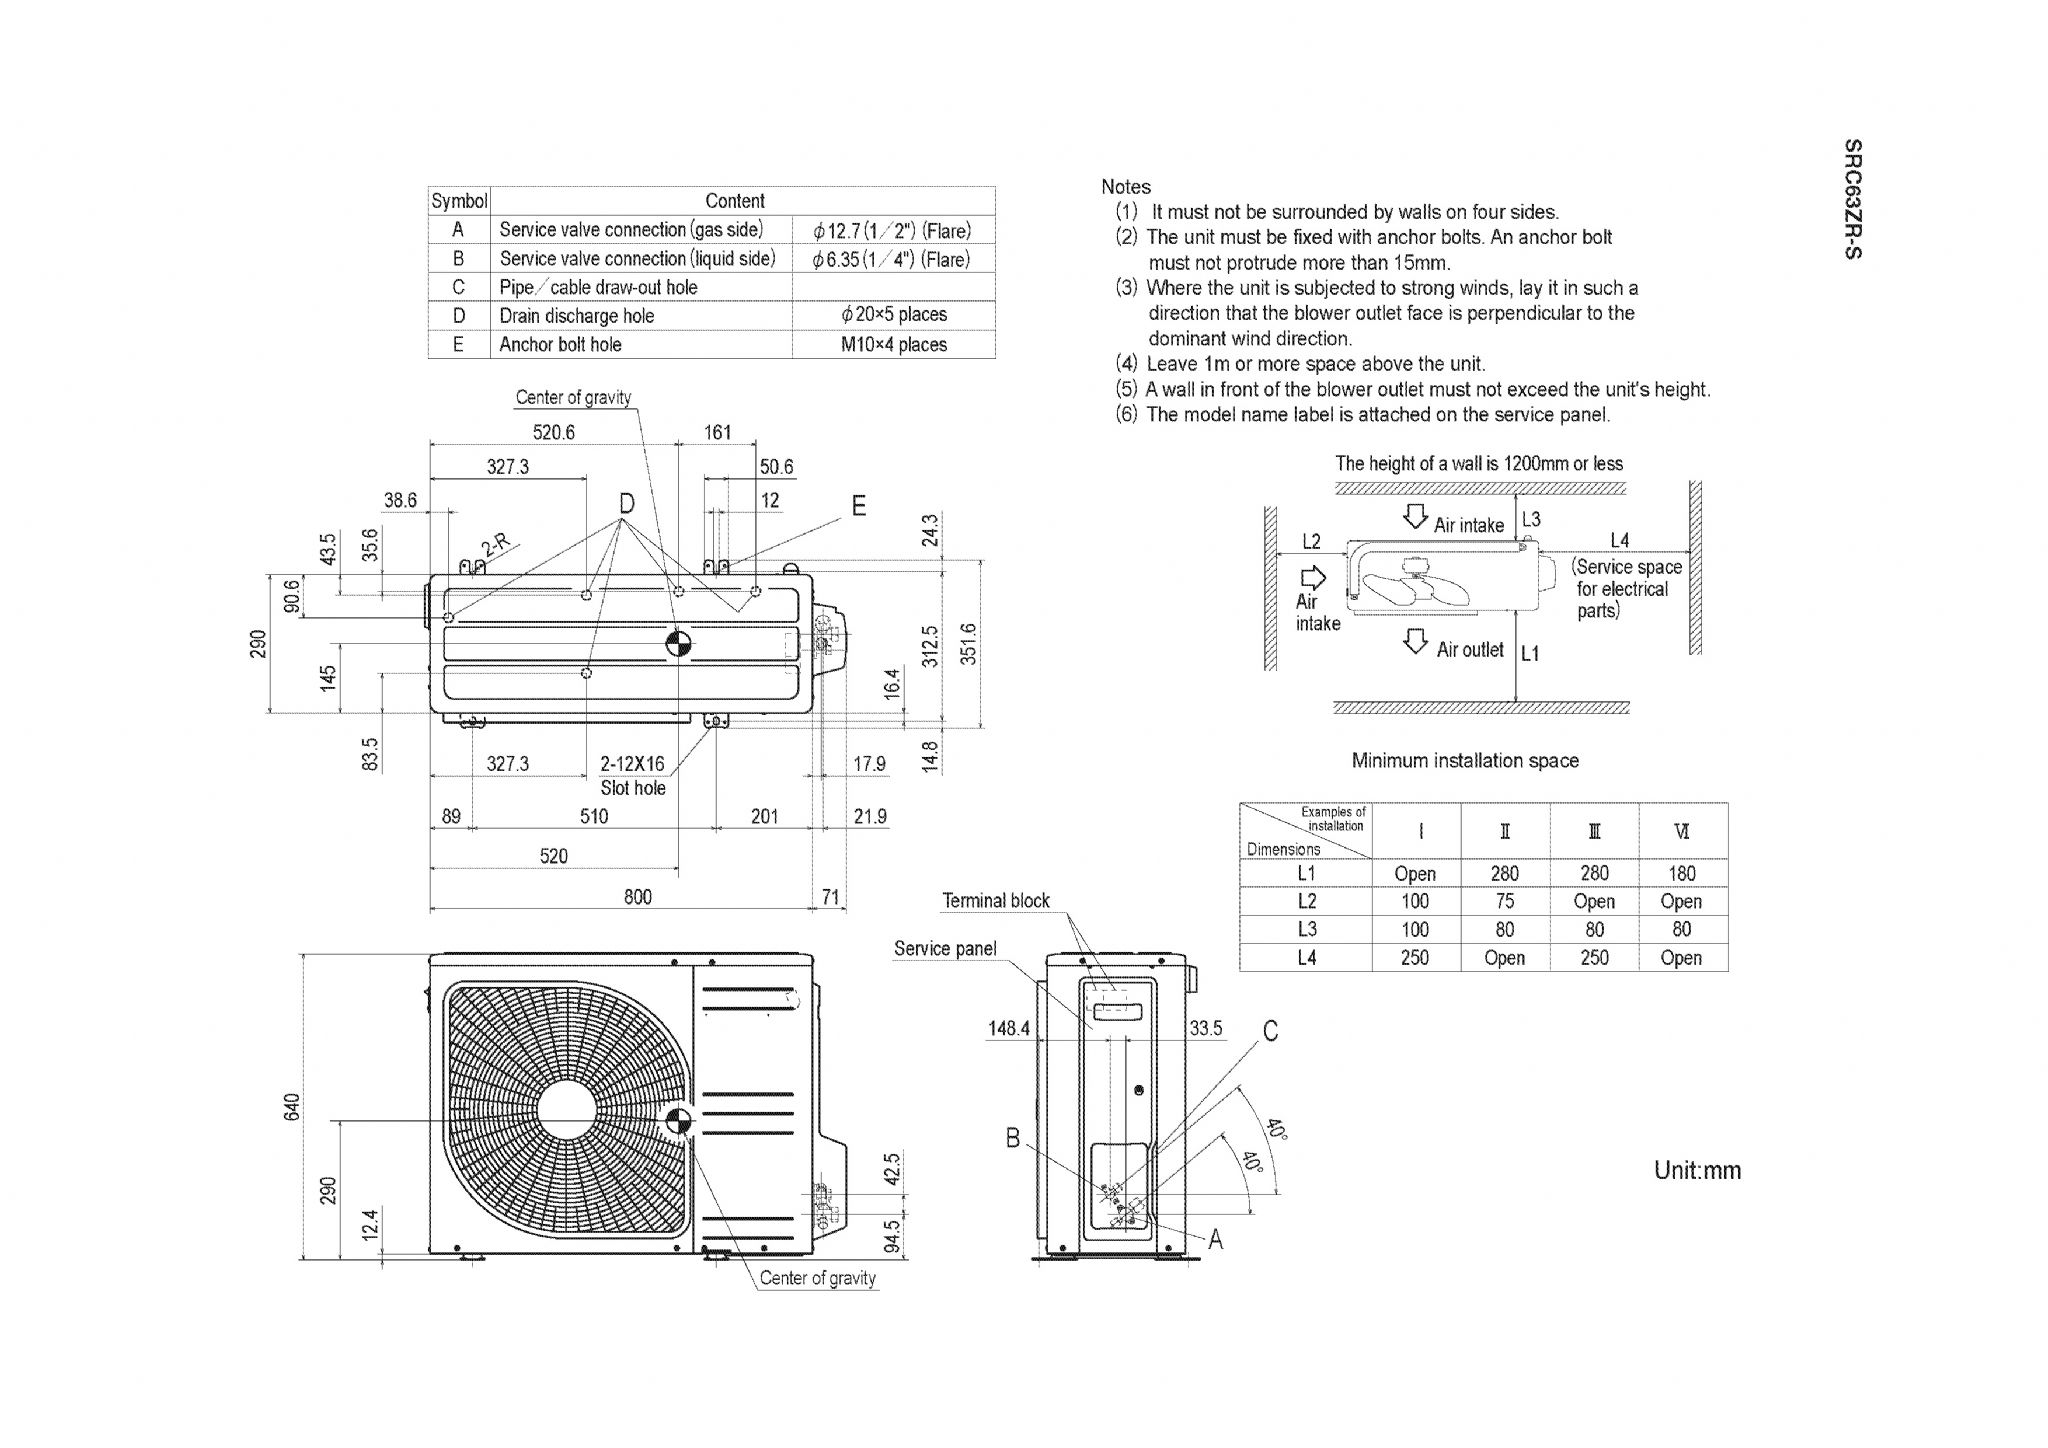 mitsubishi heavy industries air conditioning srk63zr s wall mounted installation kit [3] 8528 p mitsubishi heavy industries wiring diagram wiring diagram